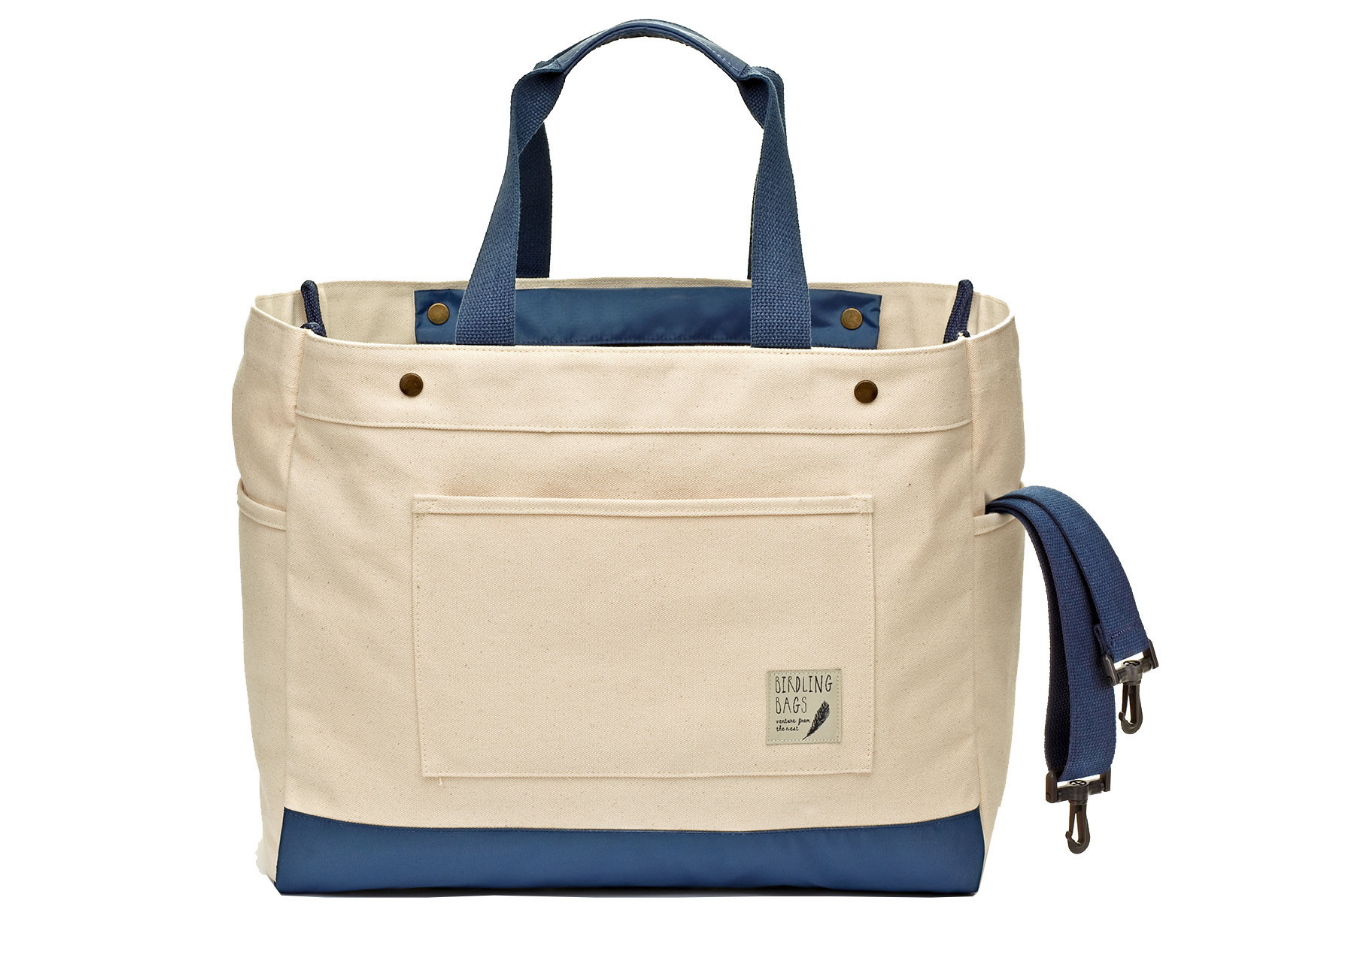 Diaper Bags That Are Awesome on the Beach